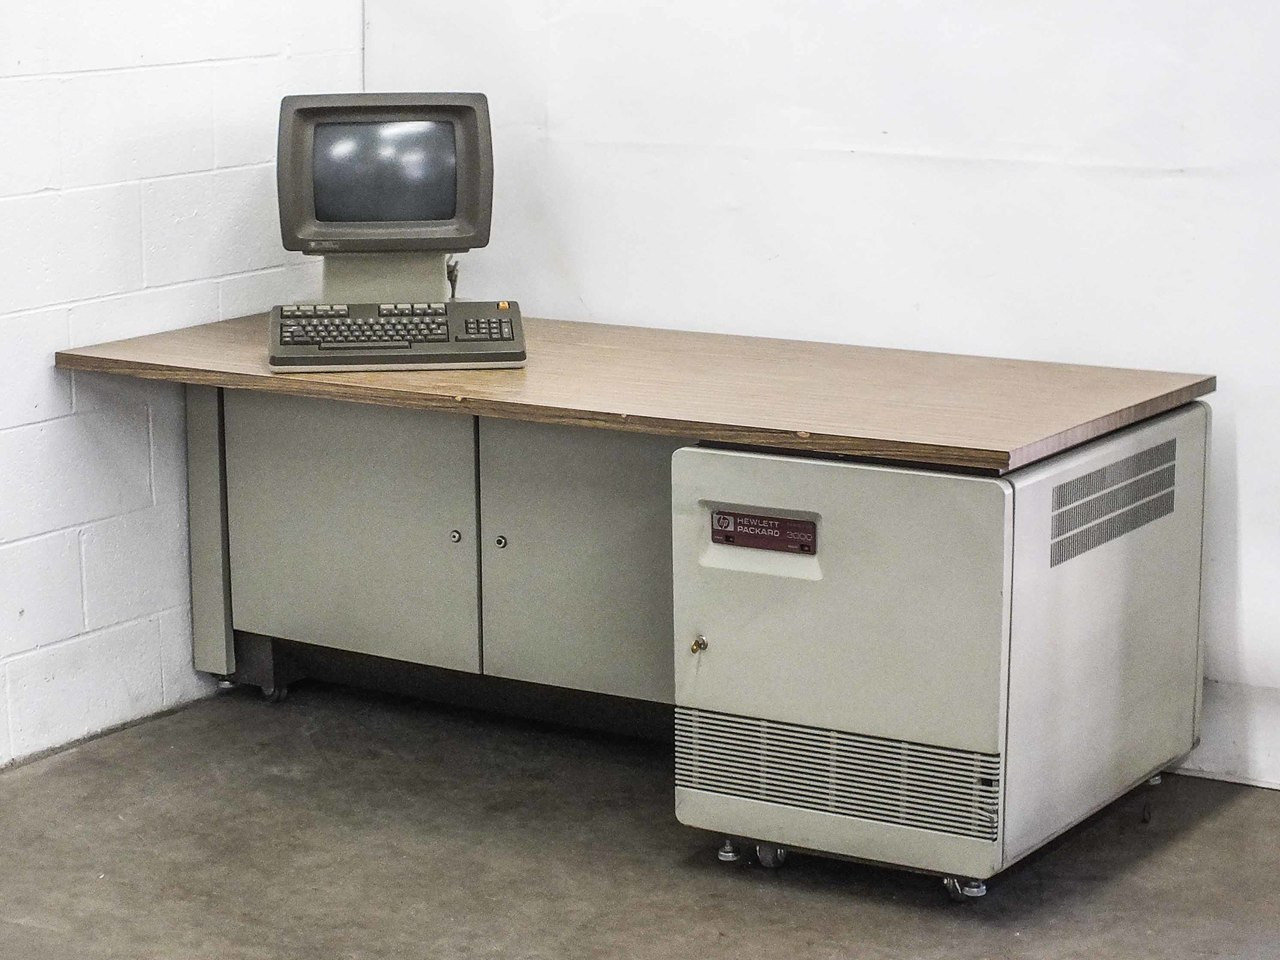 ibm 9370 or as400 vintage mainframe computer with options hewlett packard 32558a business mainframe computer system